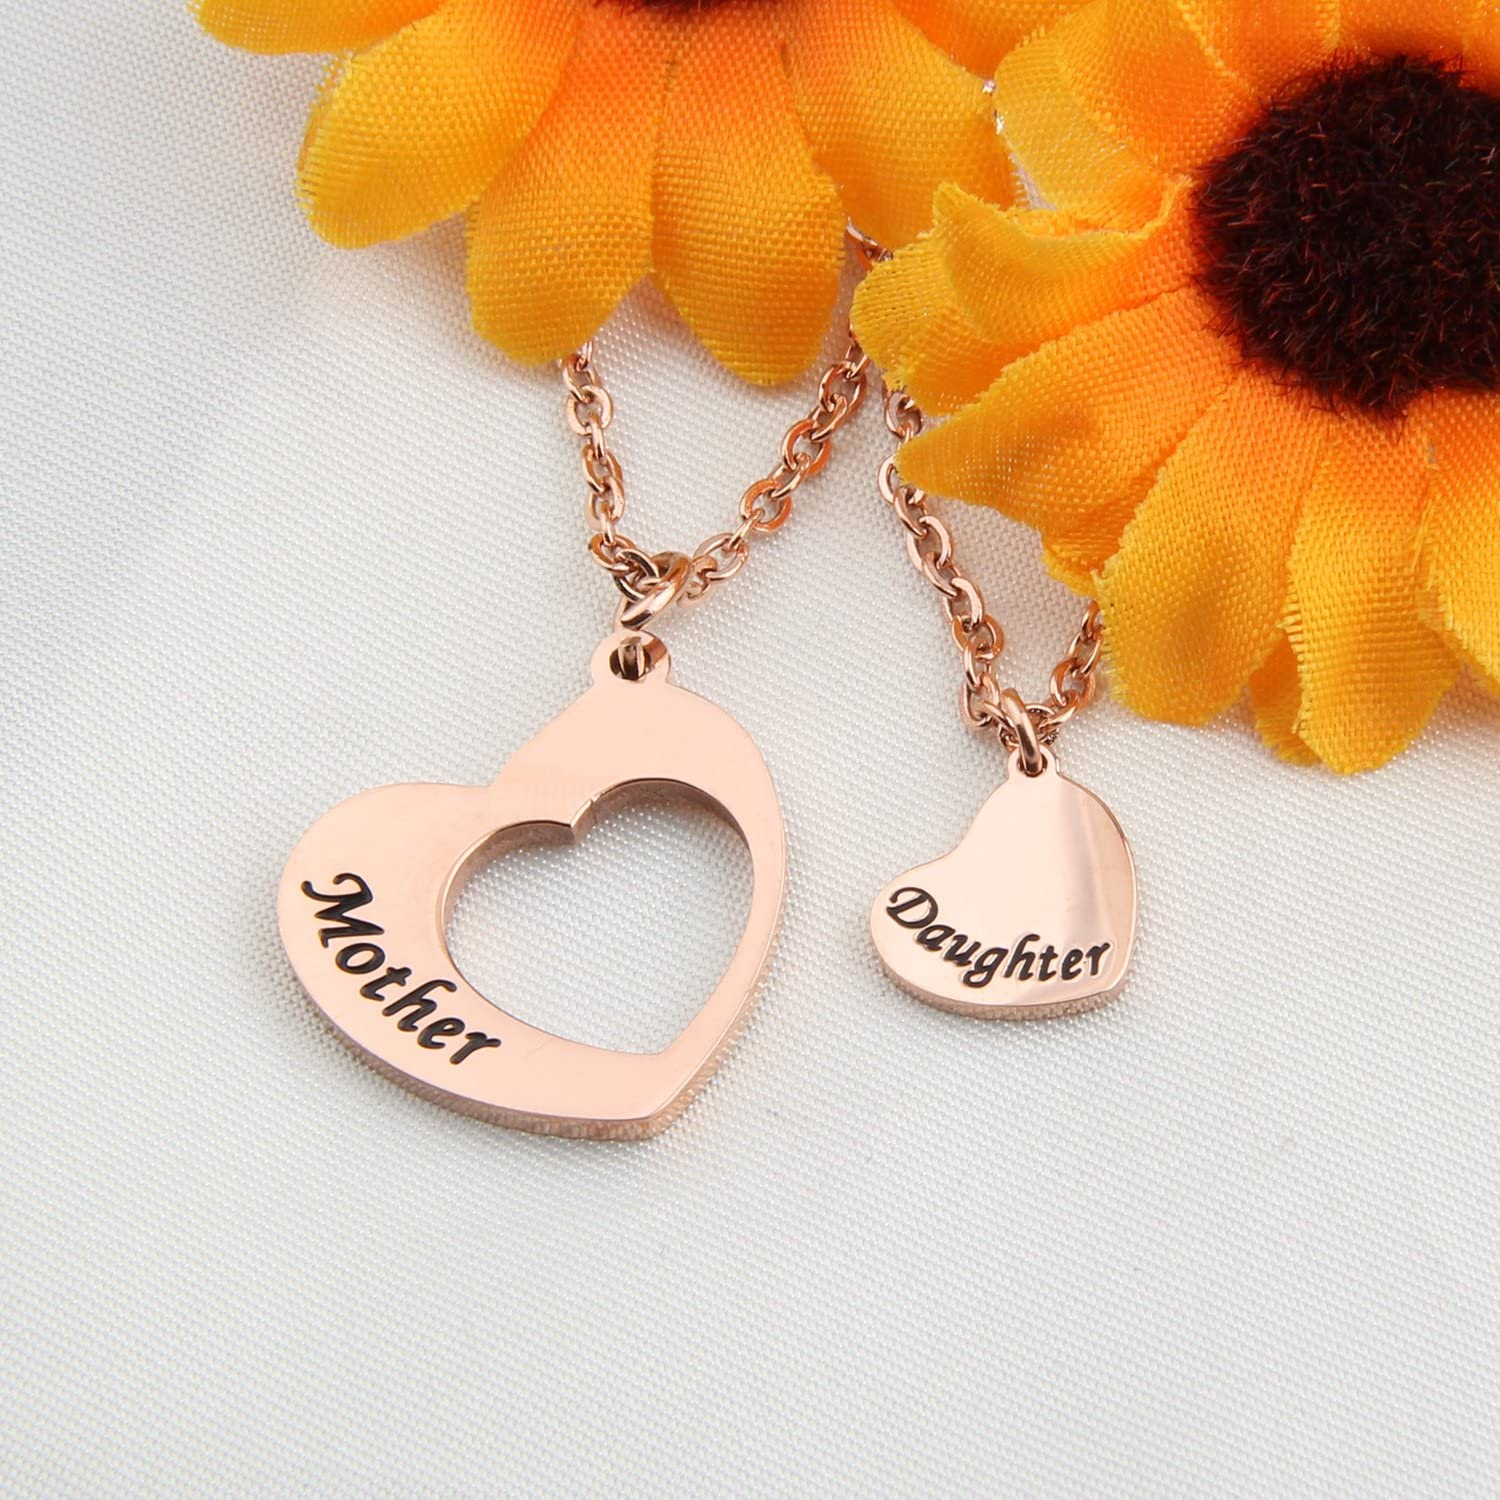 KUIYAI Mother Daughter Necklace Set of 2 Matching Heart Mom and Me Jewelry